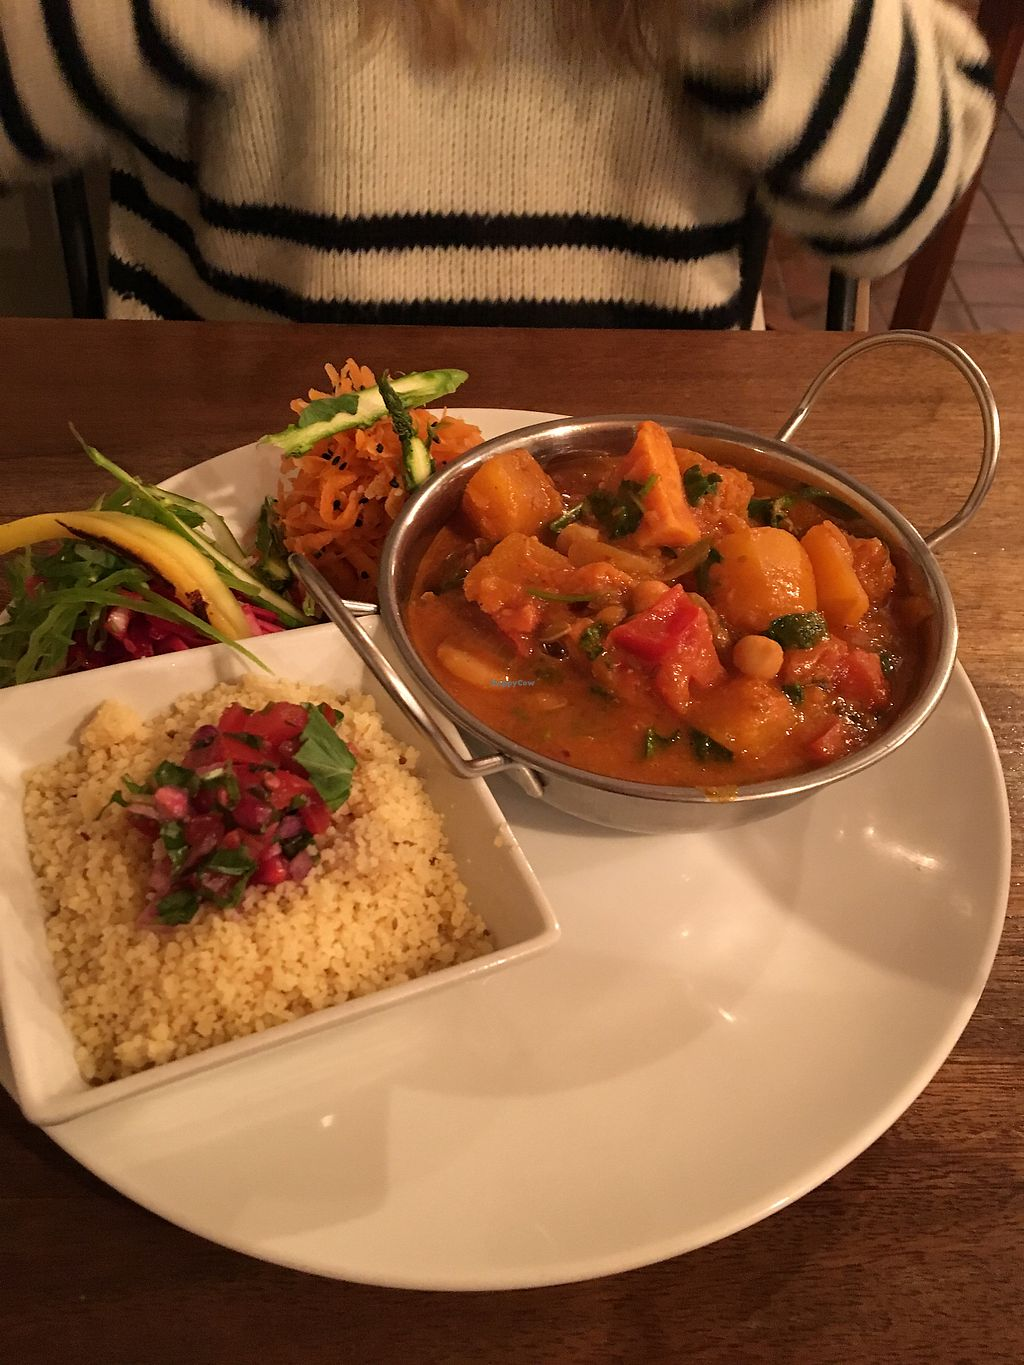 """Photo of Fusca   by <a href=""""/members/profile/LouP"""">LouP</a> <br/>West African curry with couscous <br/> November 20, 2017  - <a href='/contact/abuse/image/77027/327502'>Report</a>"""